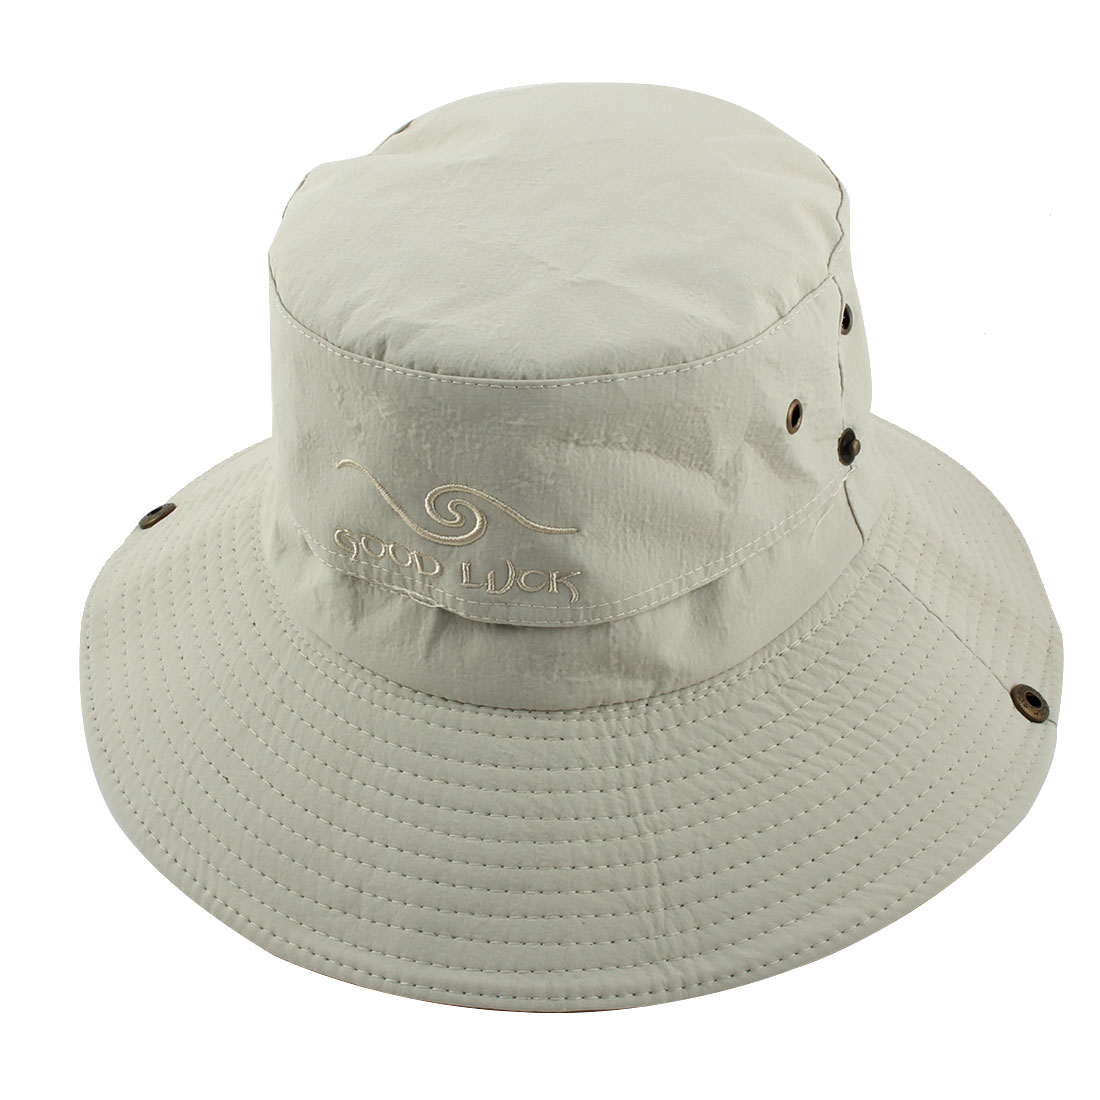 Fisherman Outdoor Sports Hiking Adjustable Strap Mesh Wide Brim Protector Bucket Summer Cap Fishing Hat Beige